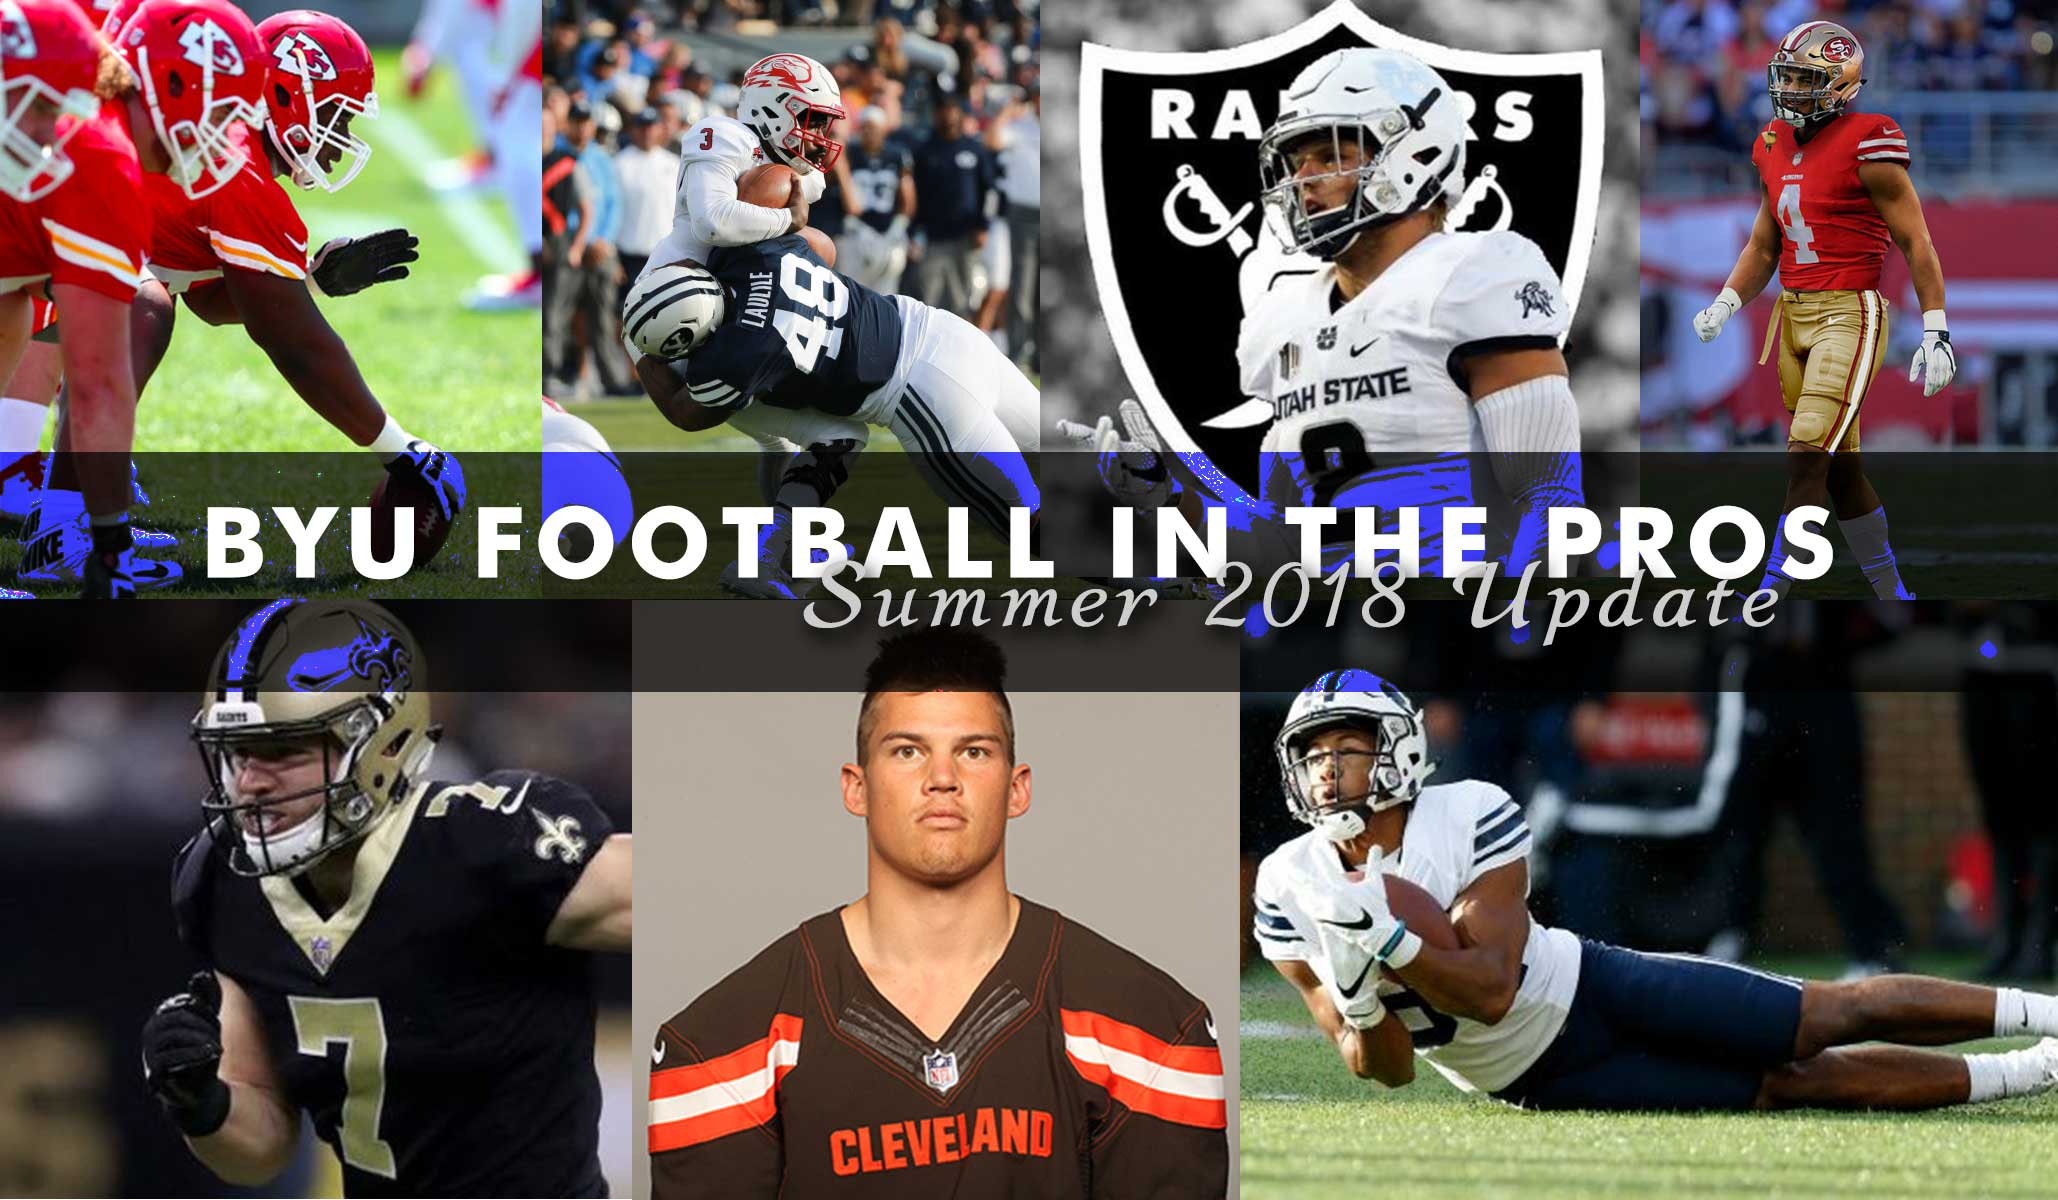 BYU Football in the Pros: Summer 2018 Update